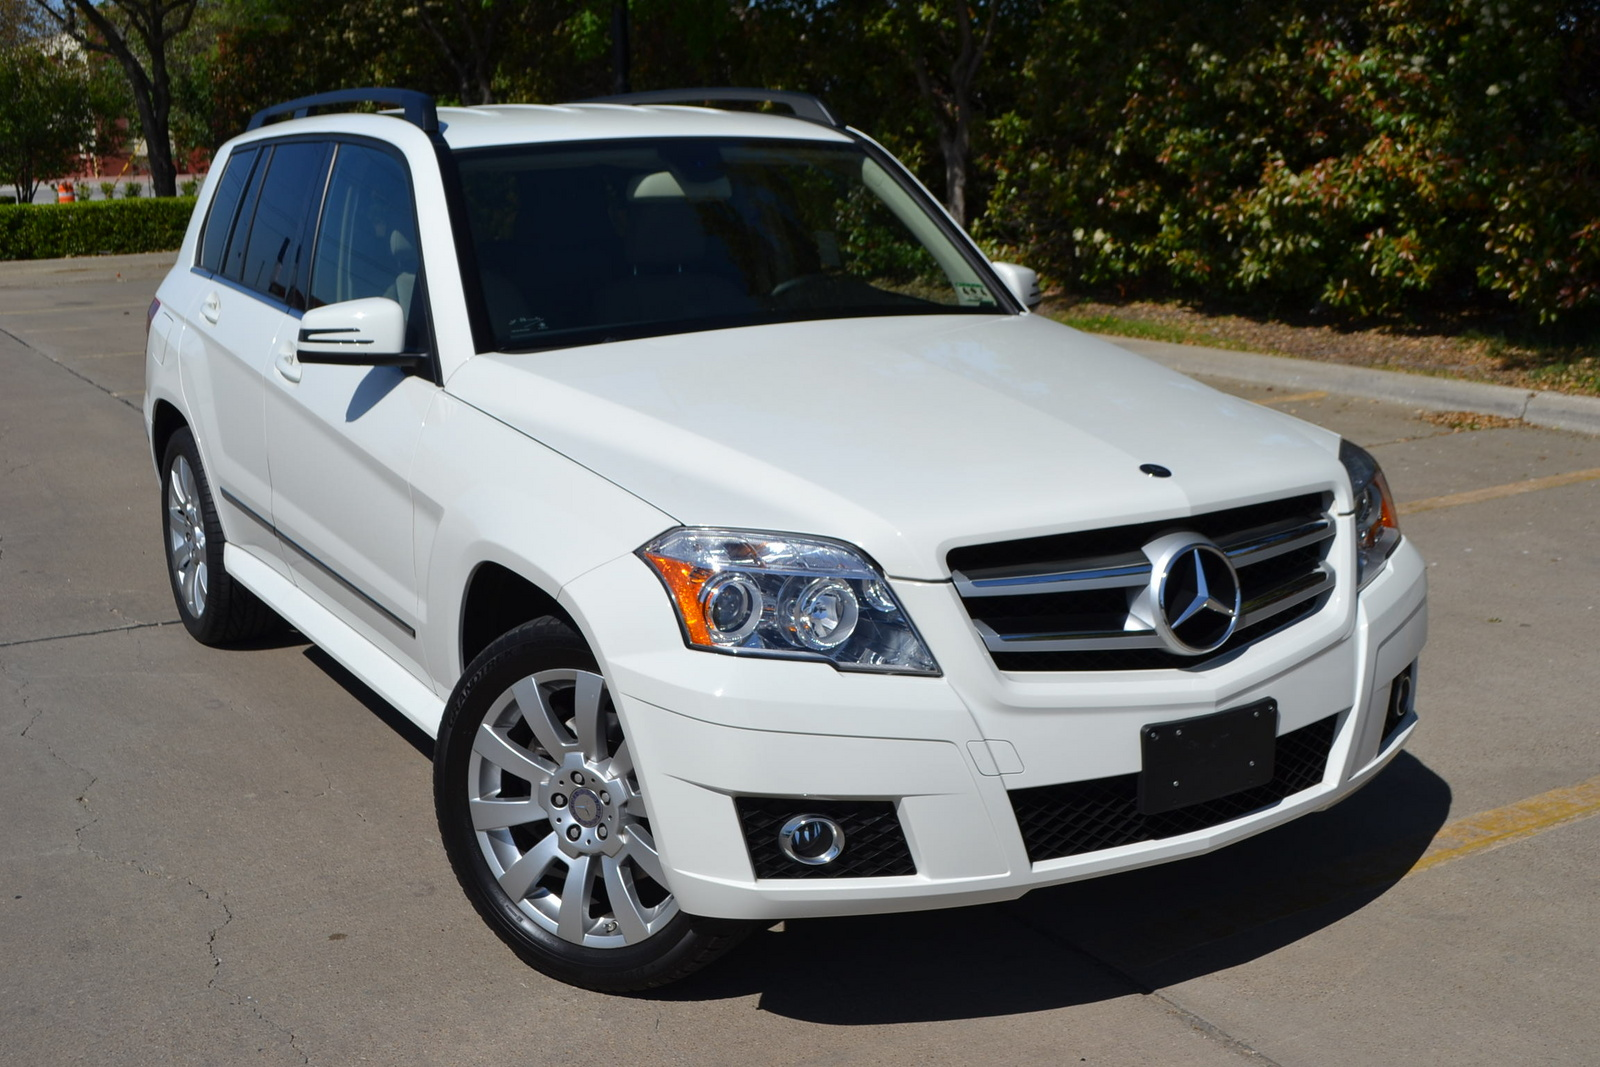 2010 mercedes benz glk class pictures cargurus for Mercedes benz glk 350 review